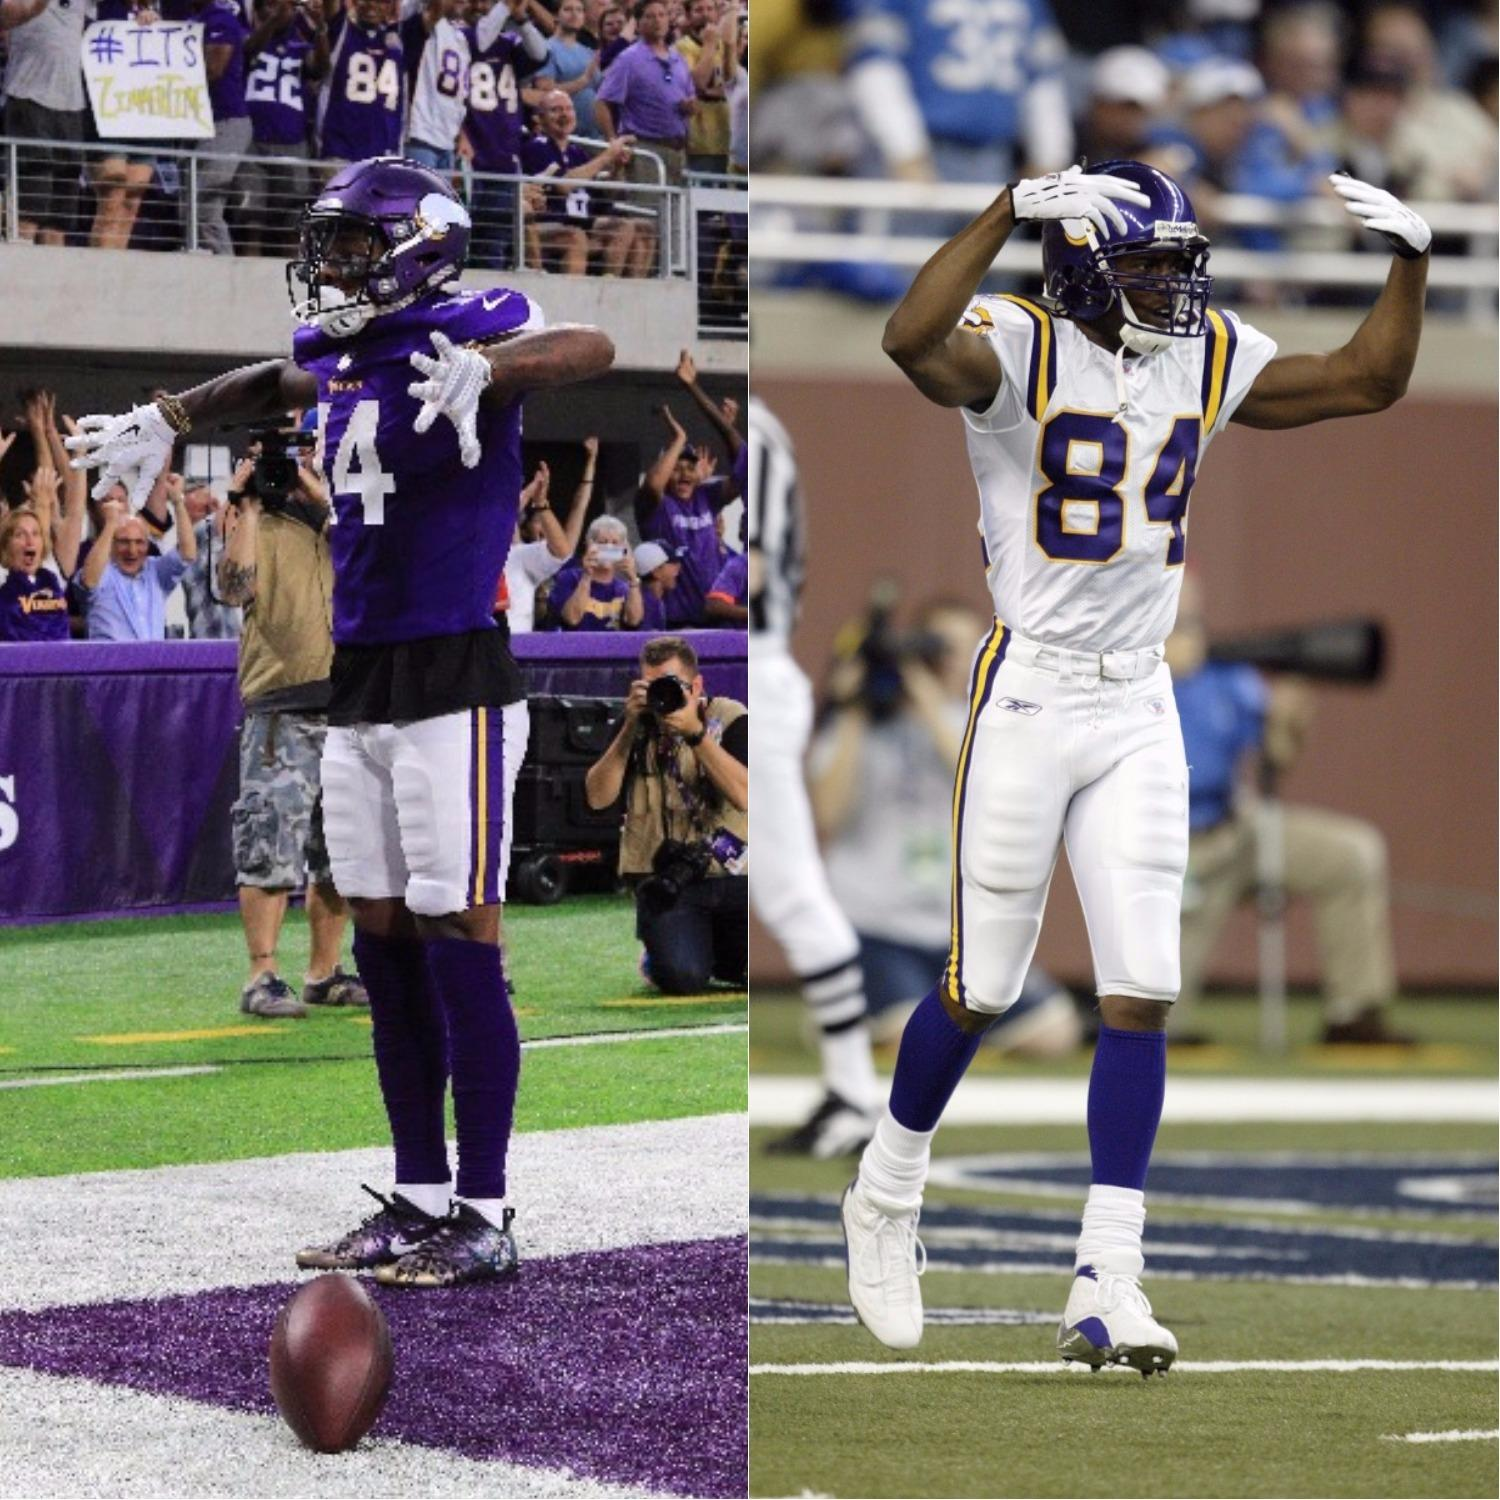 Stefon Diggs is the first Vikings WR with 2 TDs in the season opener since ... Randy Moss. https://t.co/GStwU3awQW